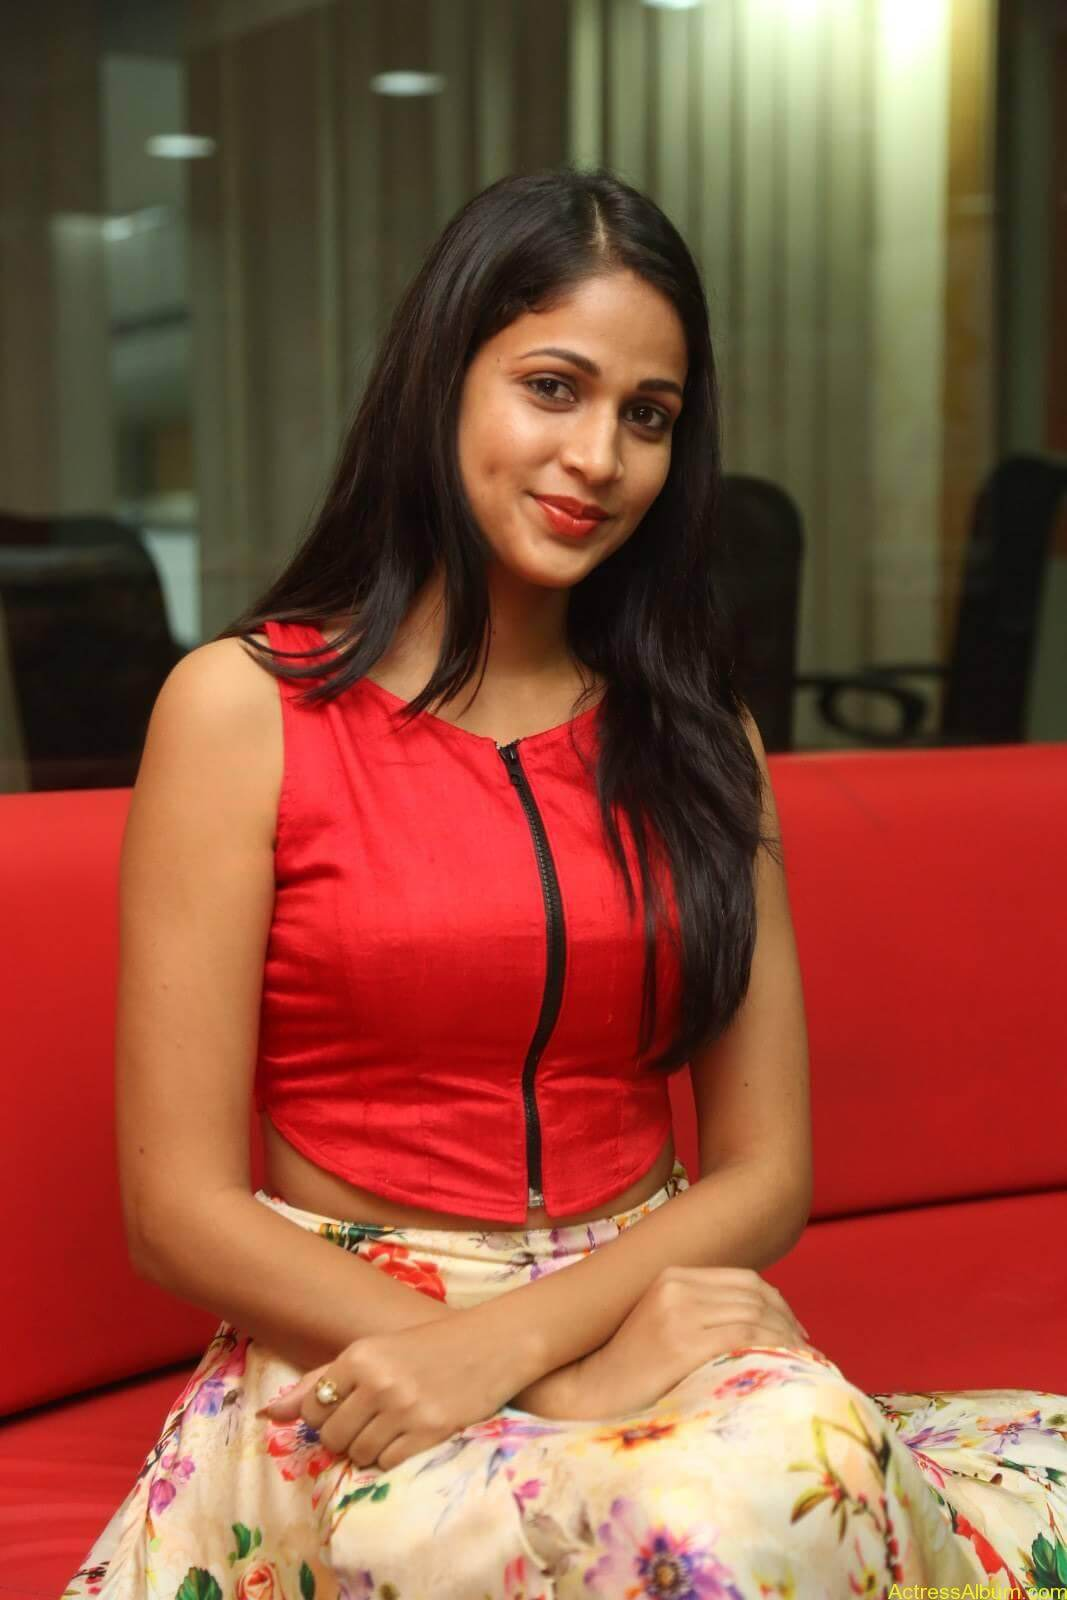 ACTRESS LAVANYA TRIPATHI LATEST PHOTOS-12